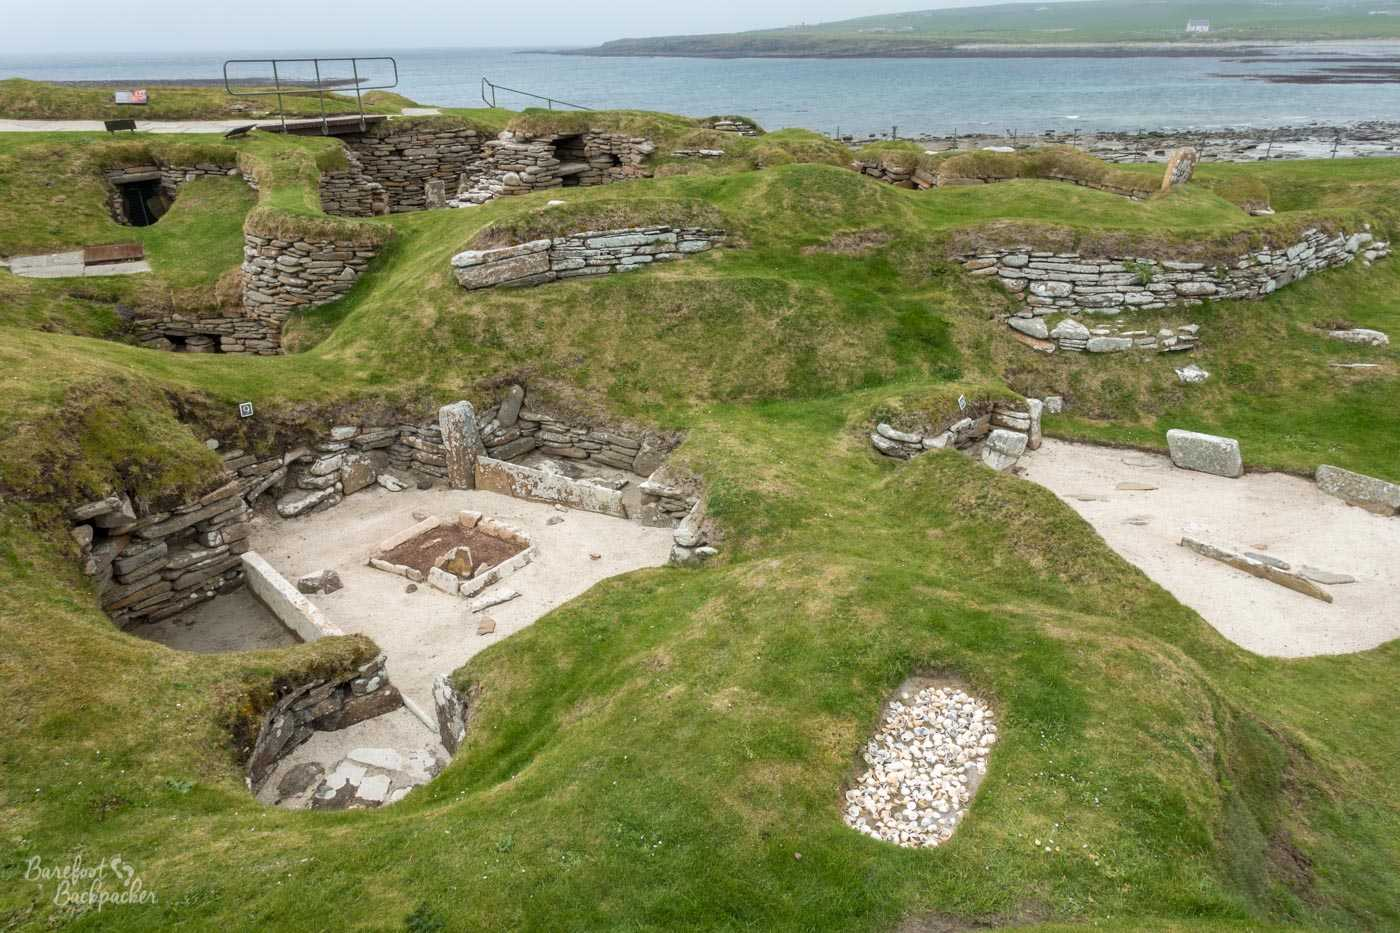 The remains of several sunken houses in the undulating grassland; a bay of the sea is visible in the background.